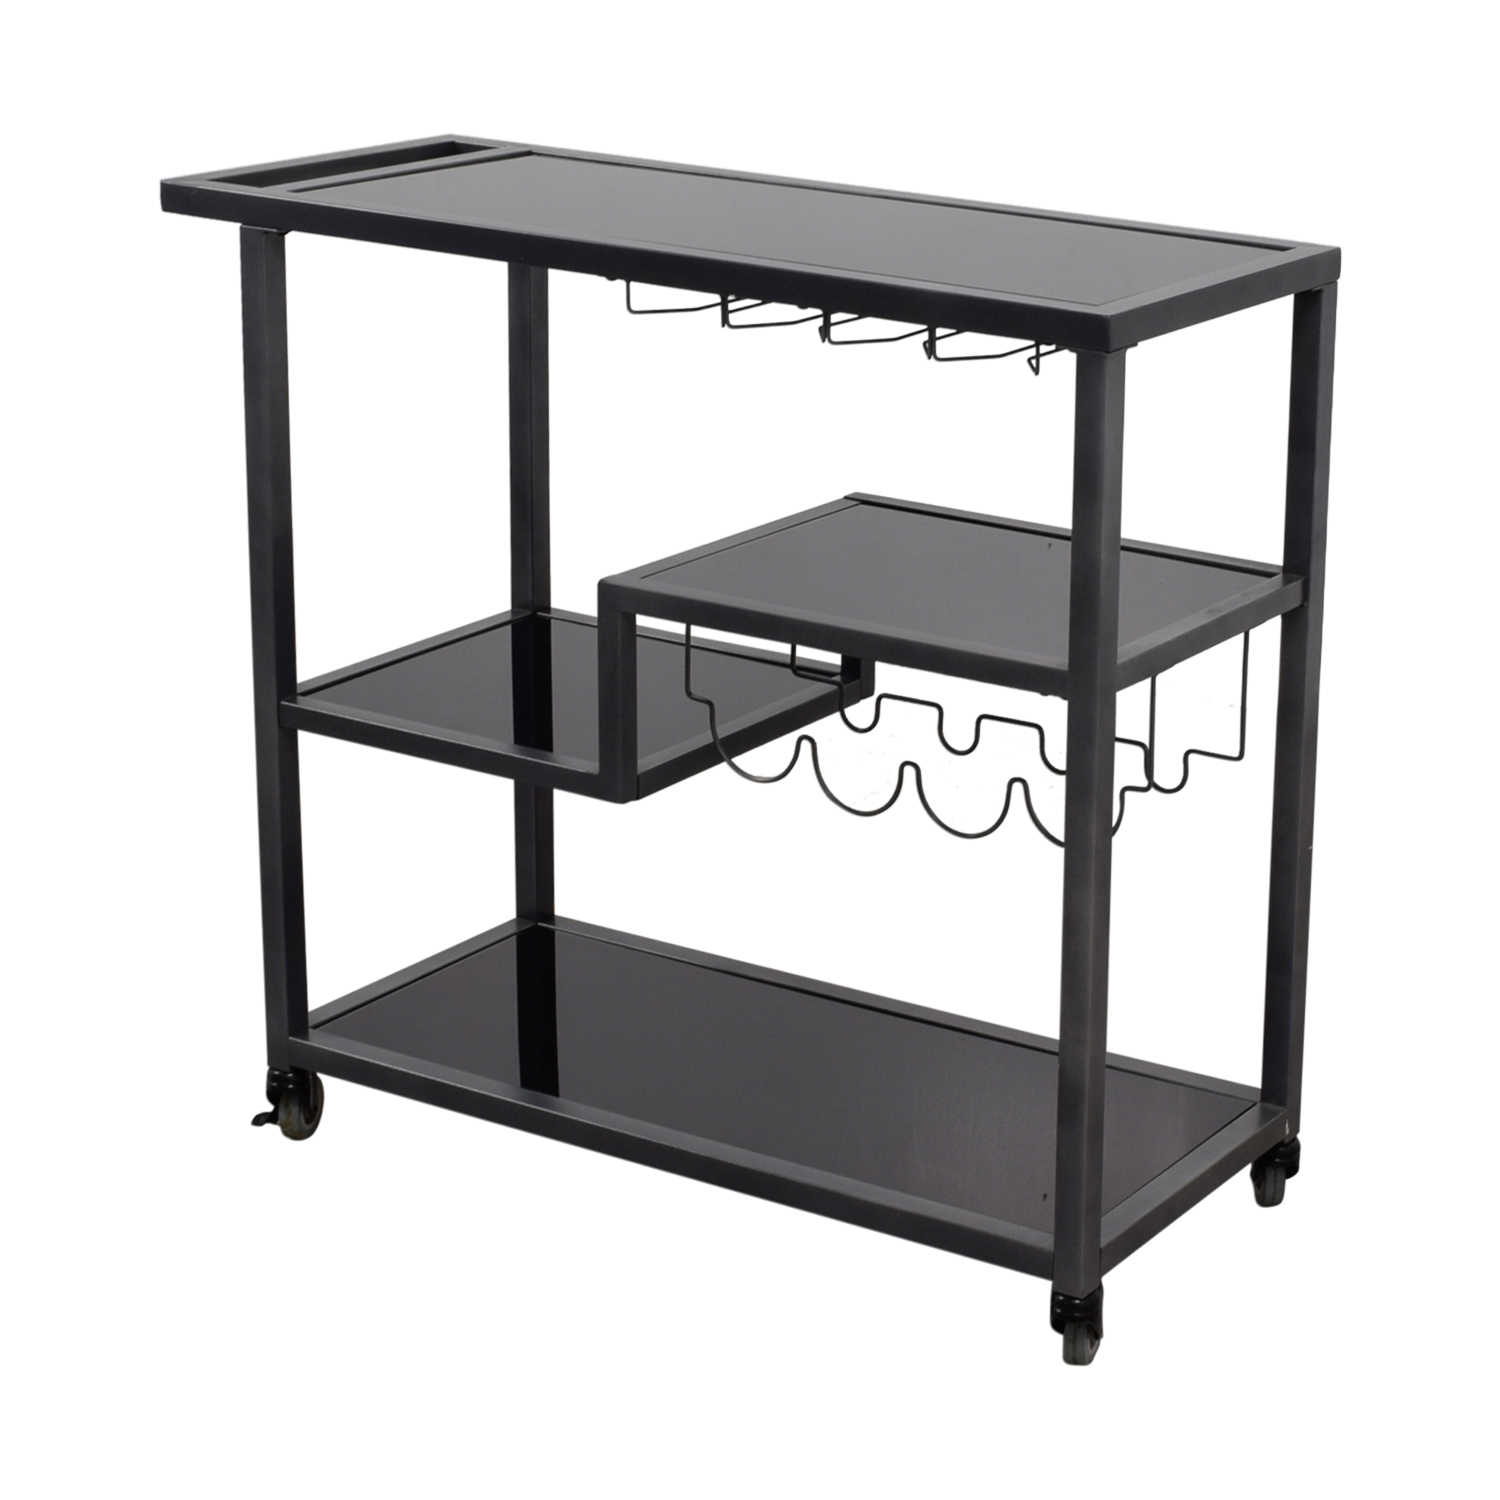 Holly & Martin Holly & Martin Zephs Black Glass and Metal Bar Cart Tables